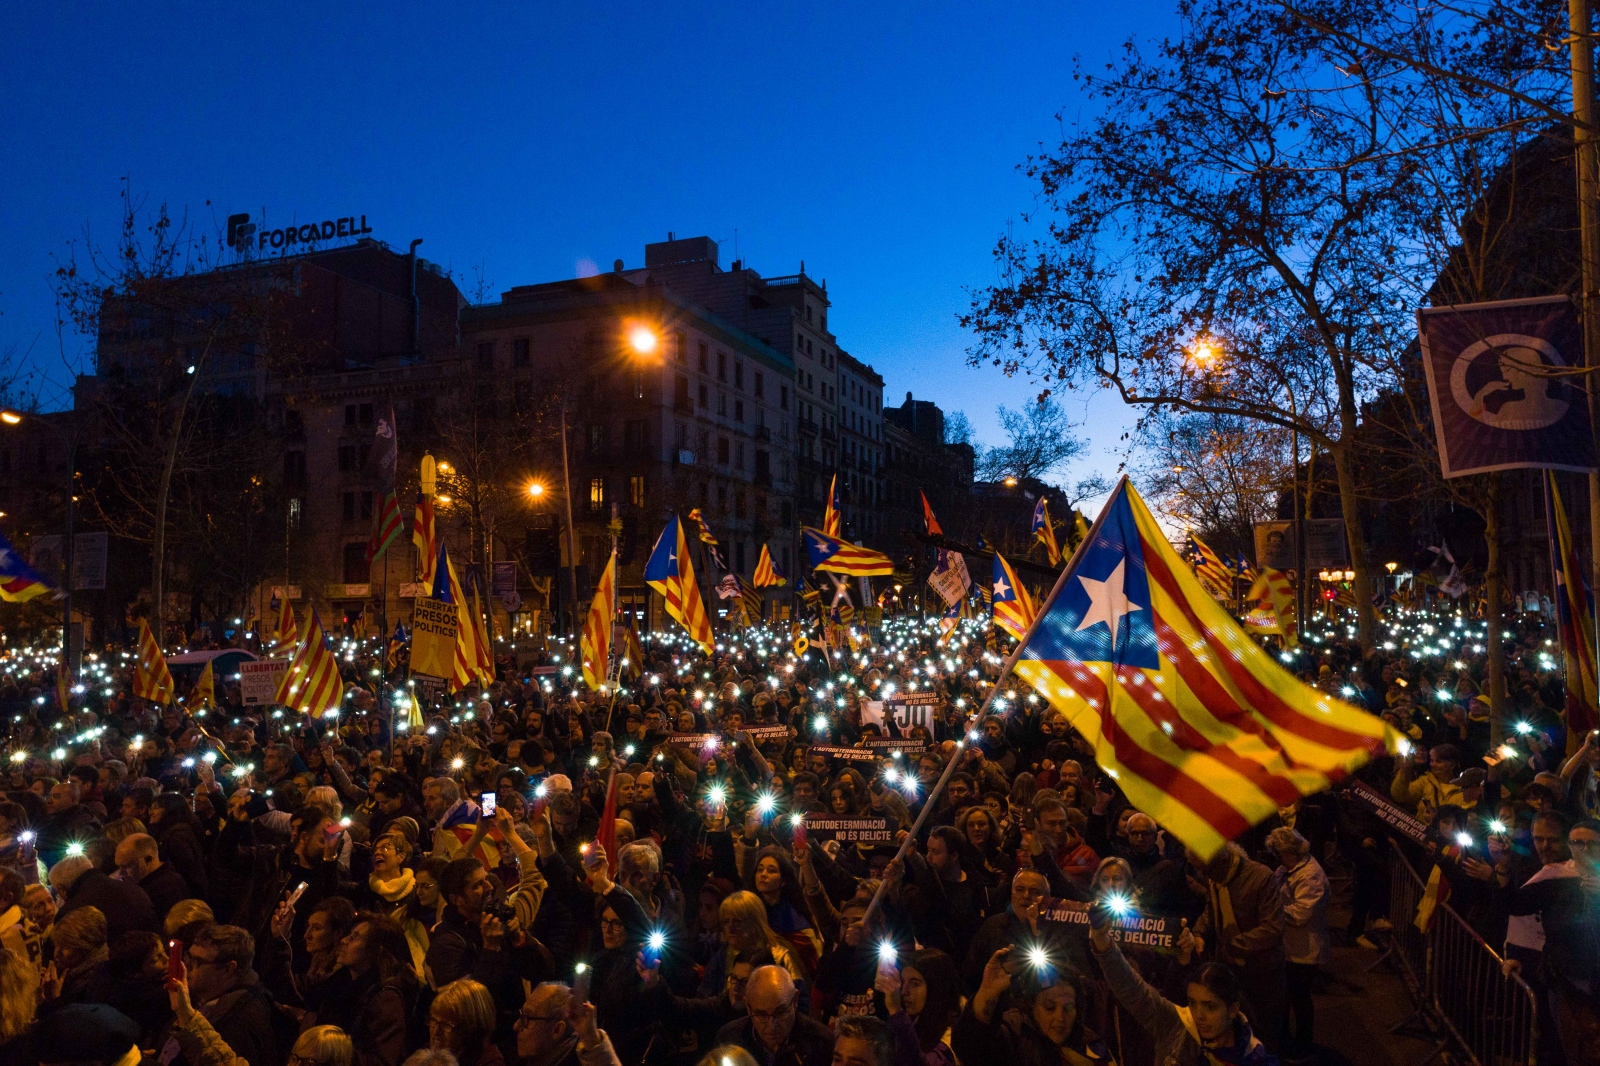 """Demonstration against the trial of the imprisoned Catalonian separatist leaders. Numerous protesters from all over Catalonia took to the streets to protest for the liberation of the """"political prisoners"""" and the right to self-determination. Barcelona, February 16, 2019."""